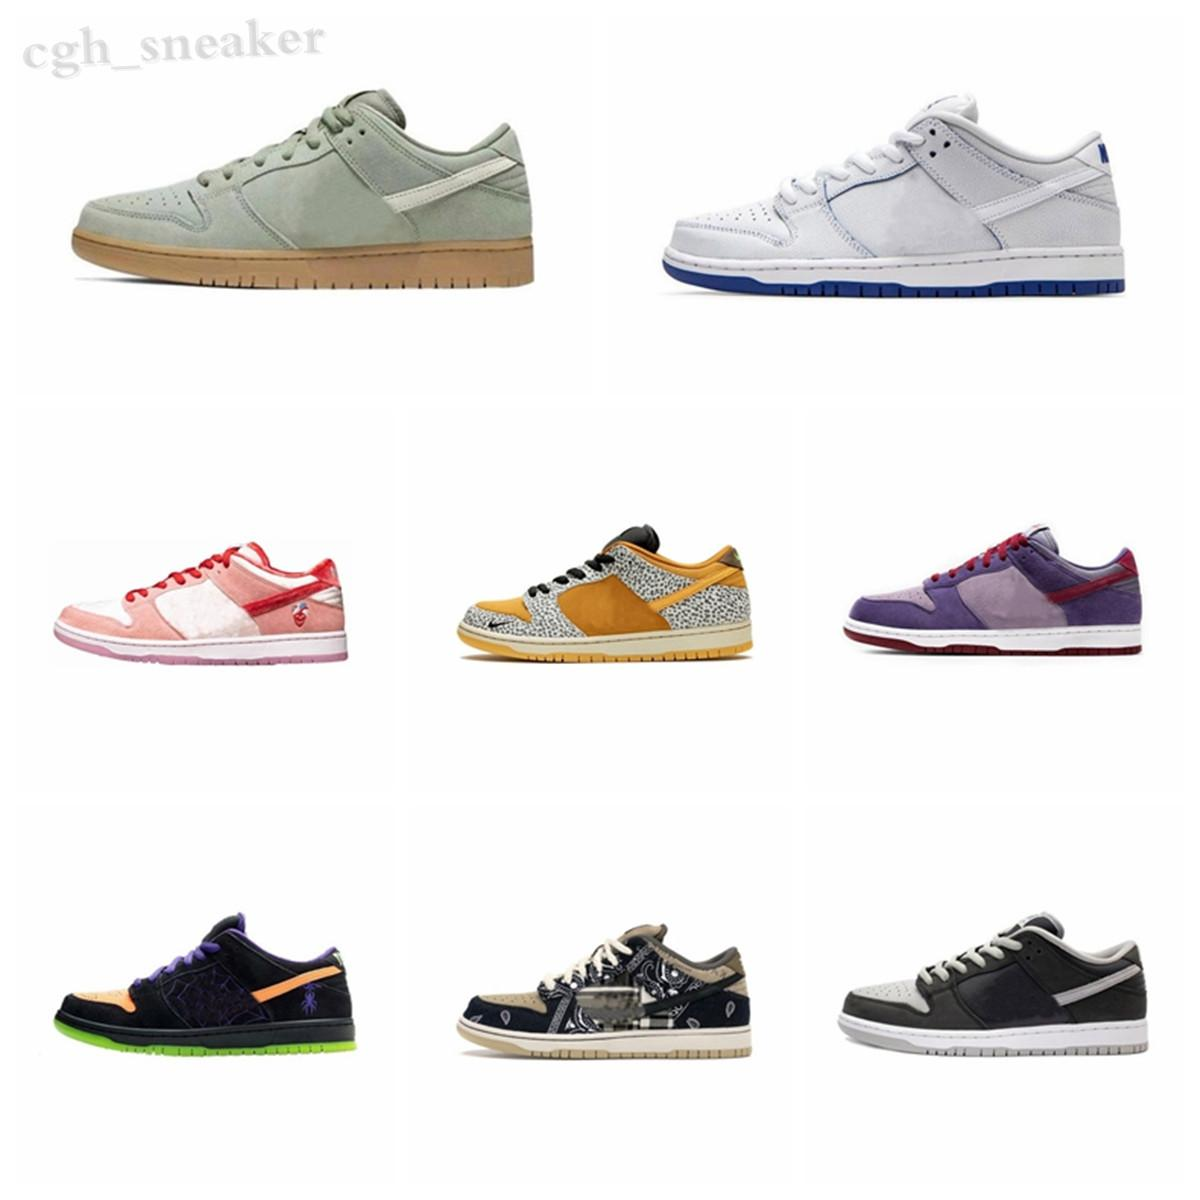 Nike Dunk SB Dunk Low Zapatos baratos Chunky Dunky Low Dunk Amarillo Naranja Green Bear Platform Tie-Dye College Midnight Black Rojo Oro Hombres Mujeres Sneakers WR06